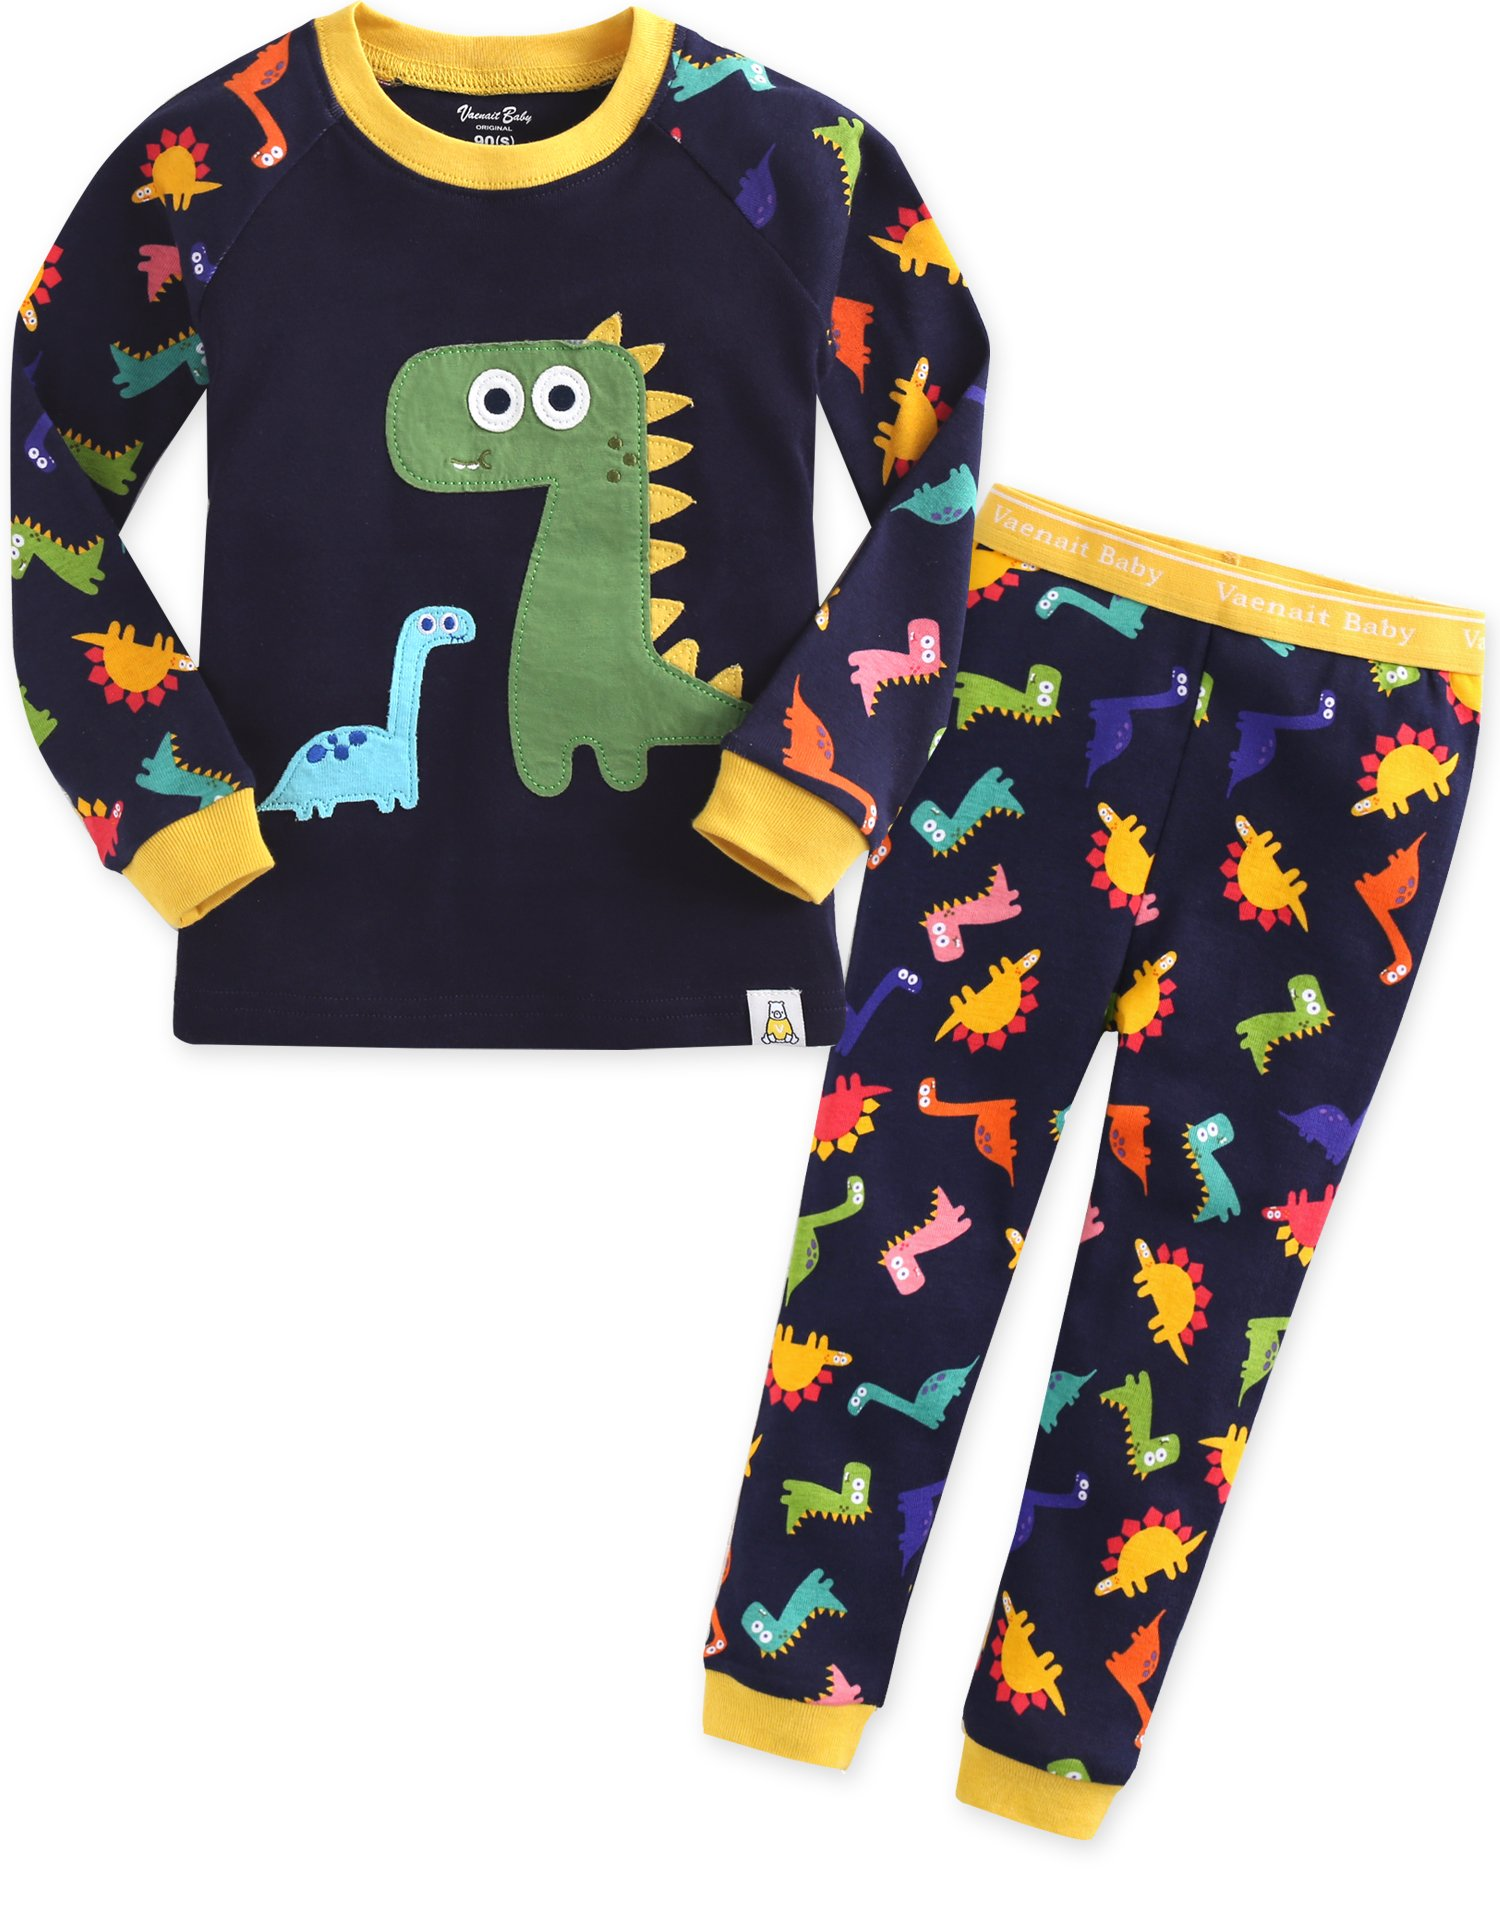 Image of Fun Cartoon Dino Pajama Set for Boys - See More Designs